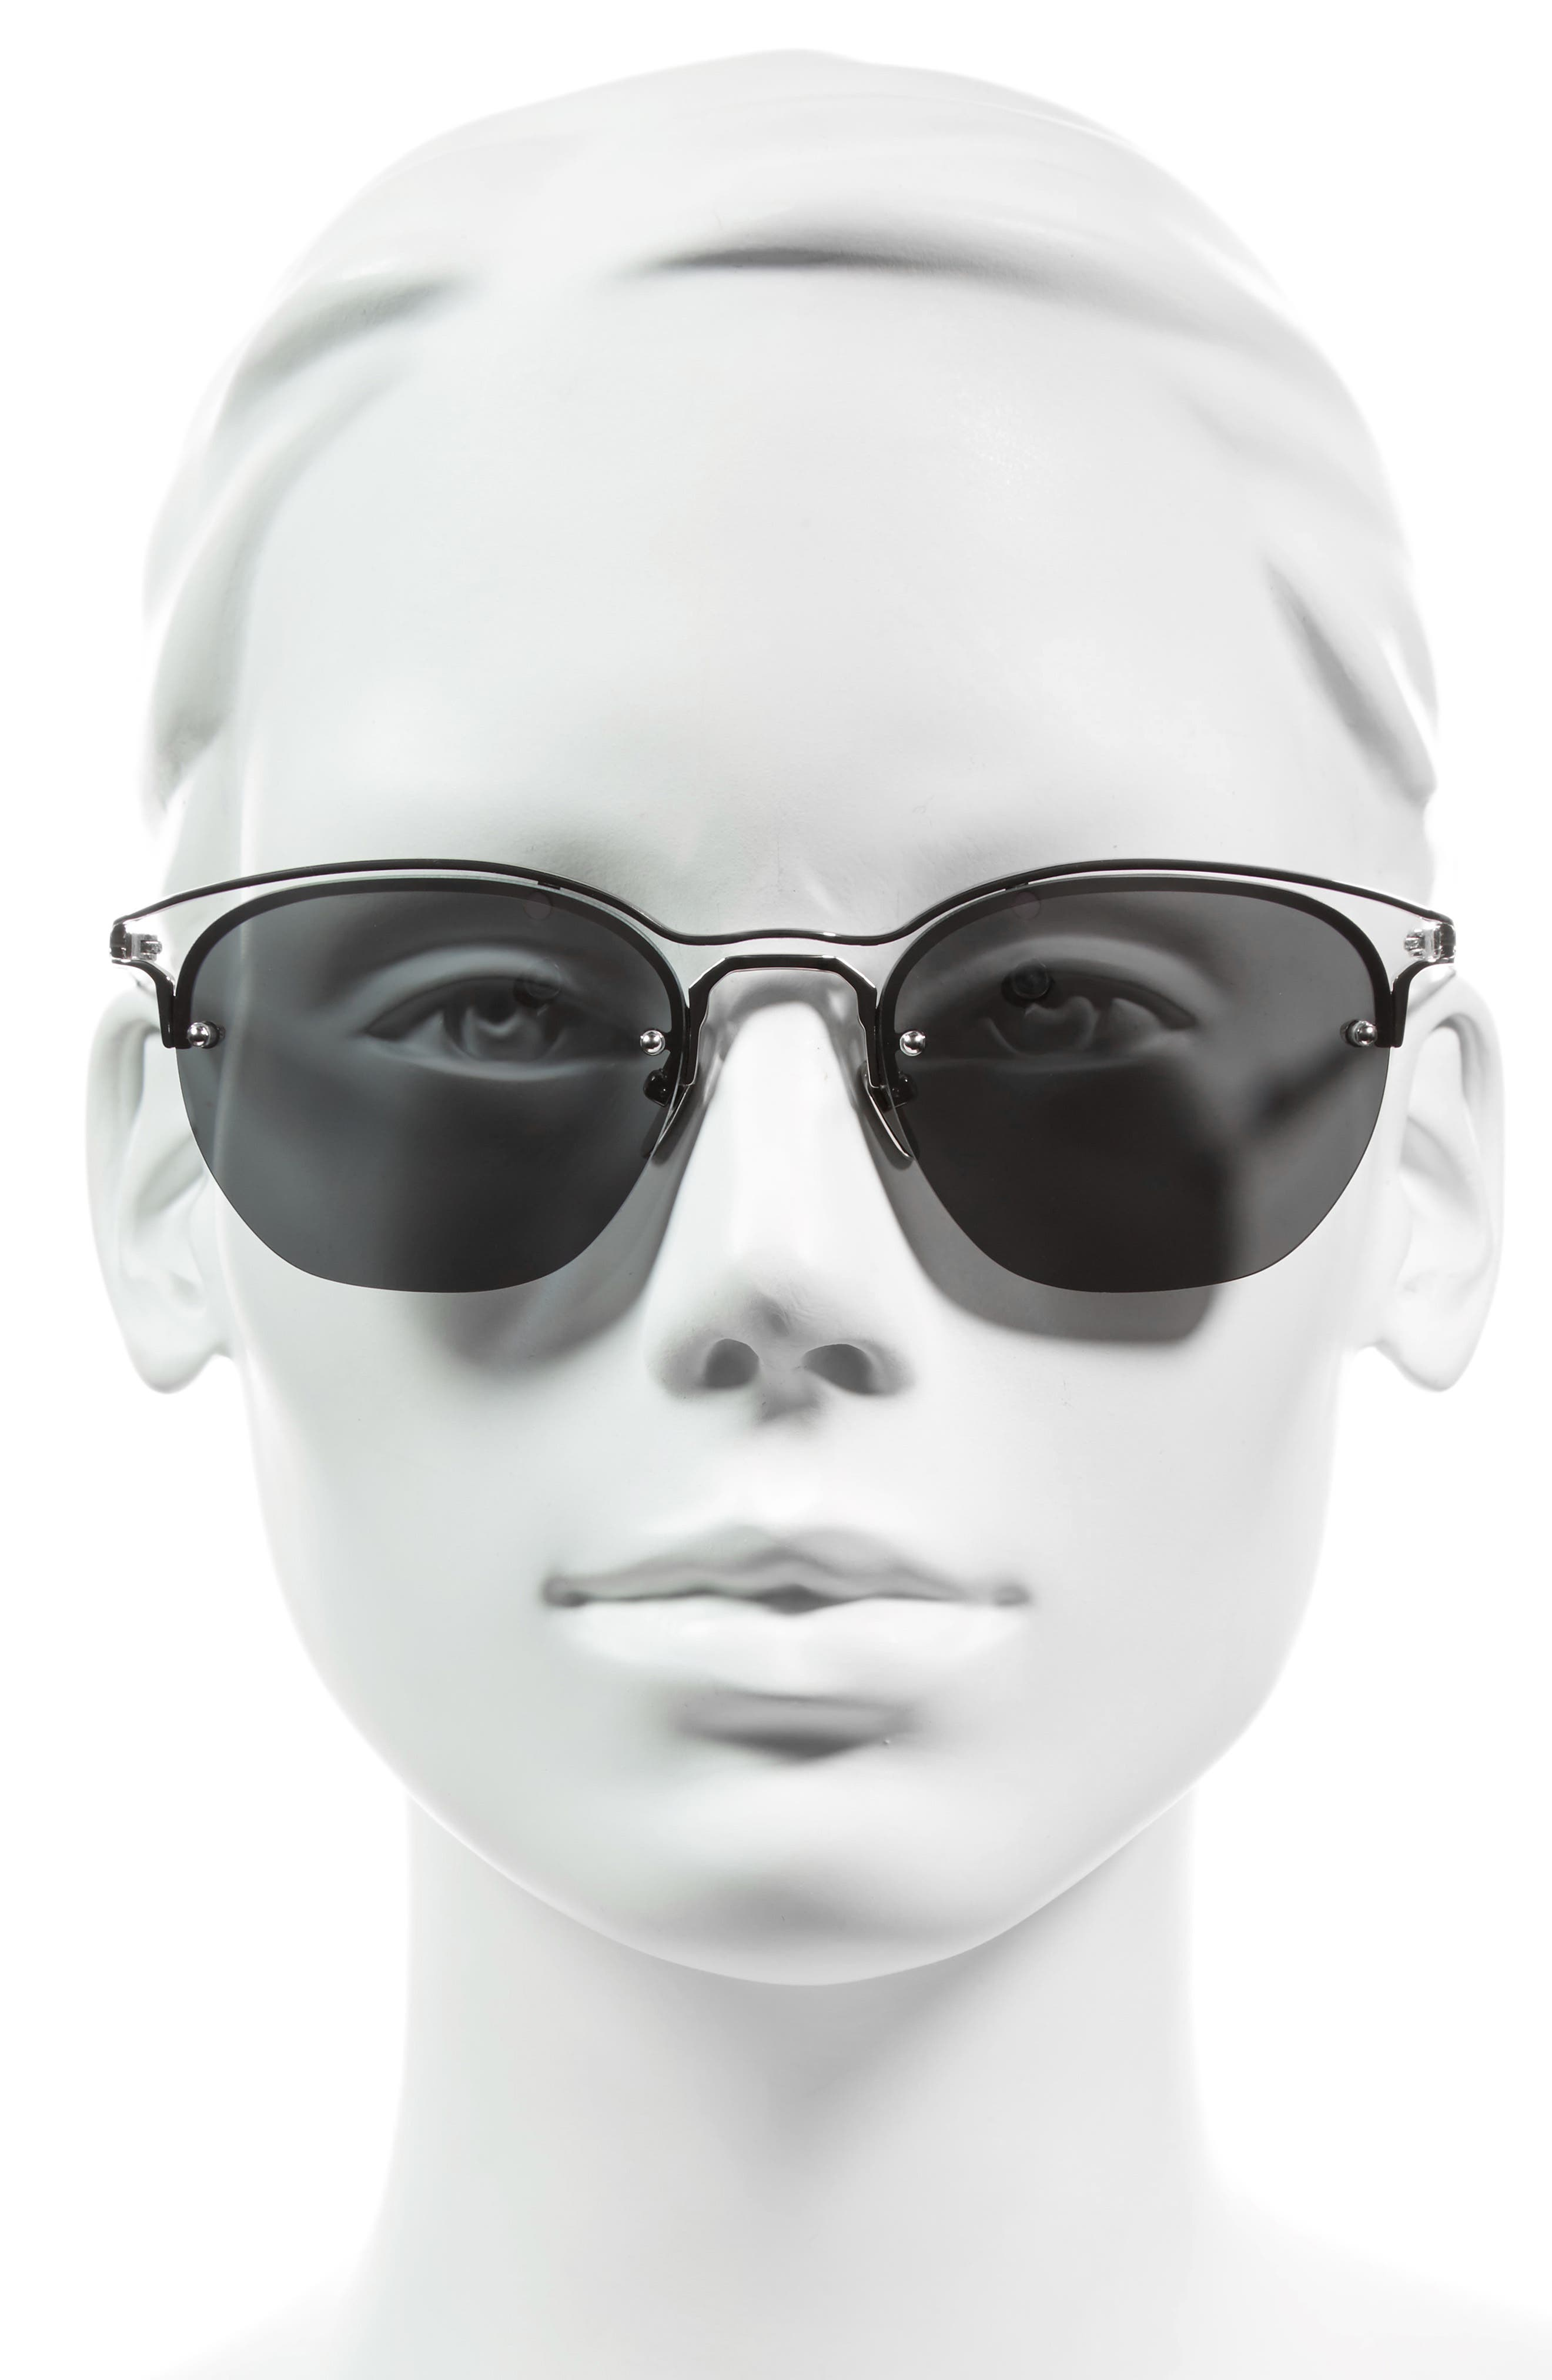 55mm Round Sunglasses,                             Alternate thumbnail 2, color,                             020